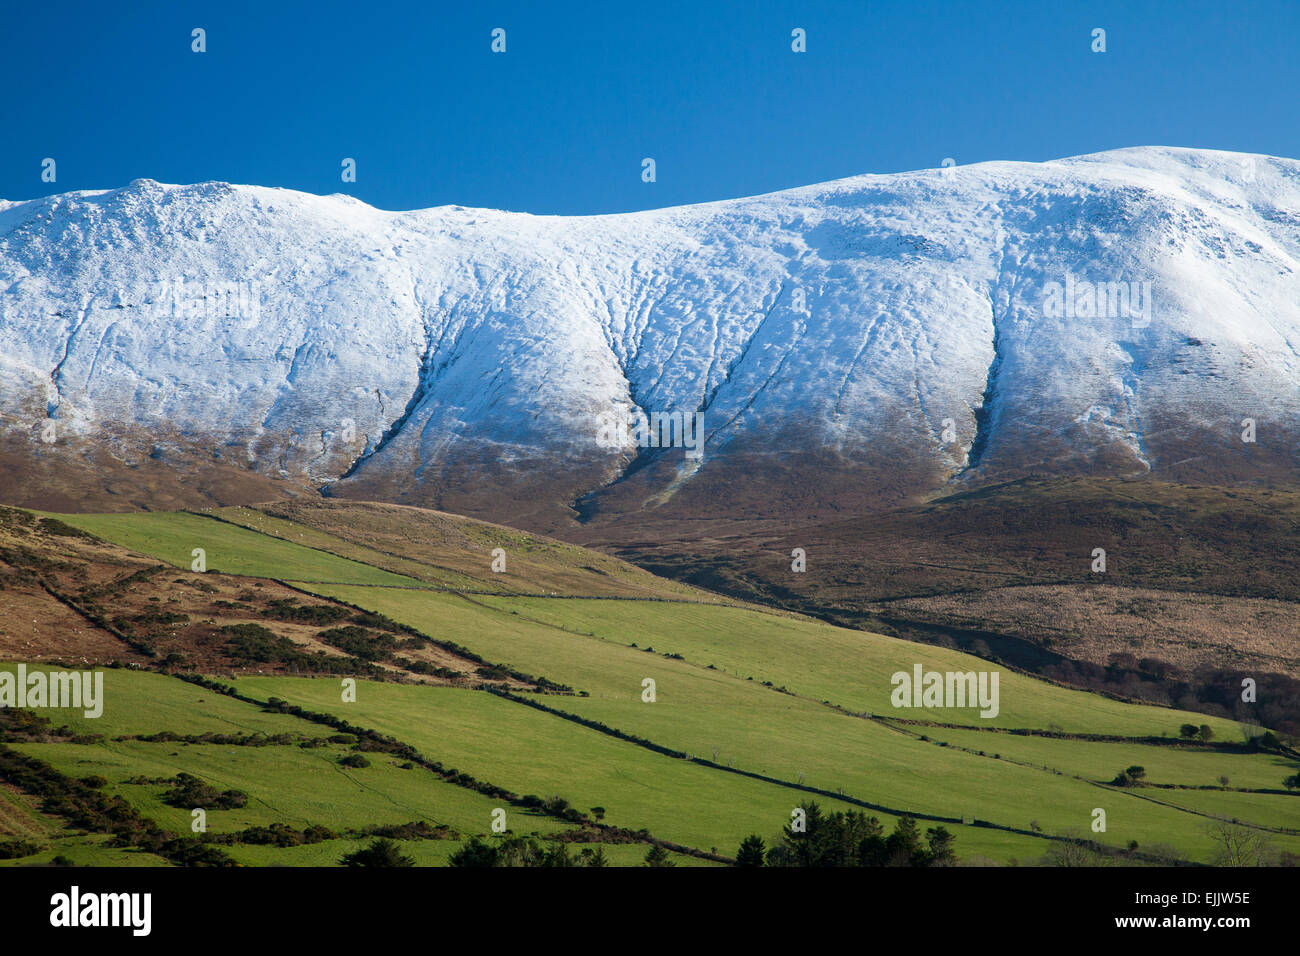 Caherconree mountain in winter, Slieve Mish Mountains, Dingle Peninsula, County Kerry, Ireland. - Stock Image